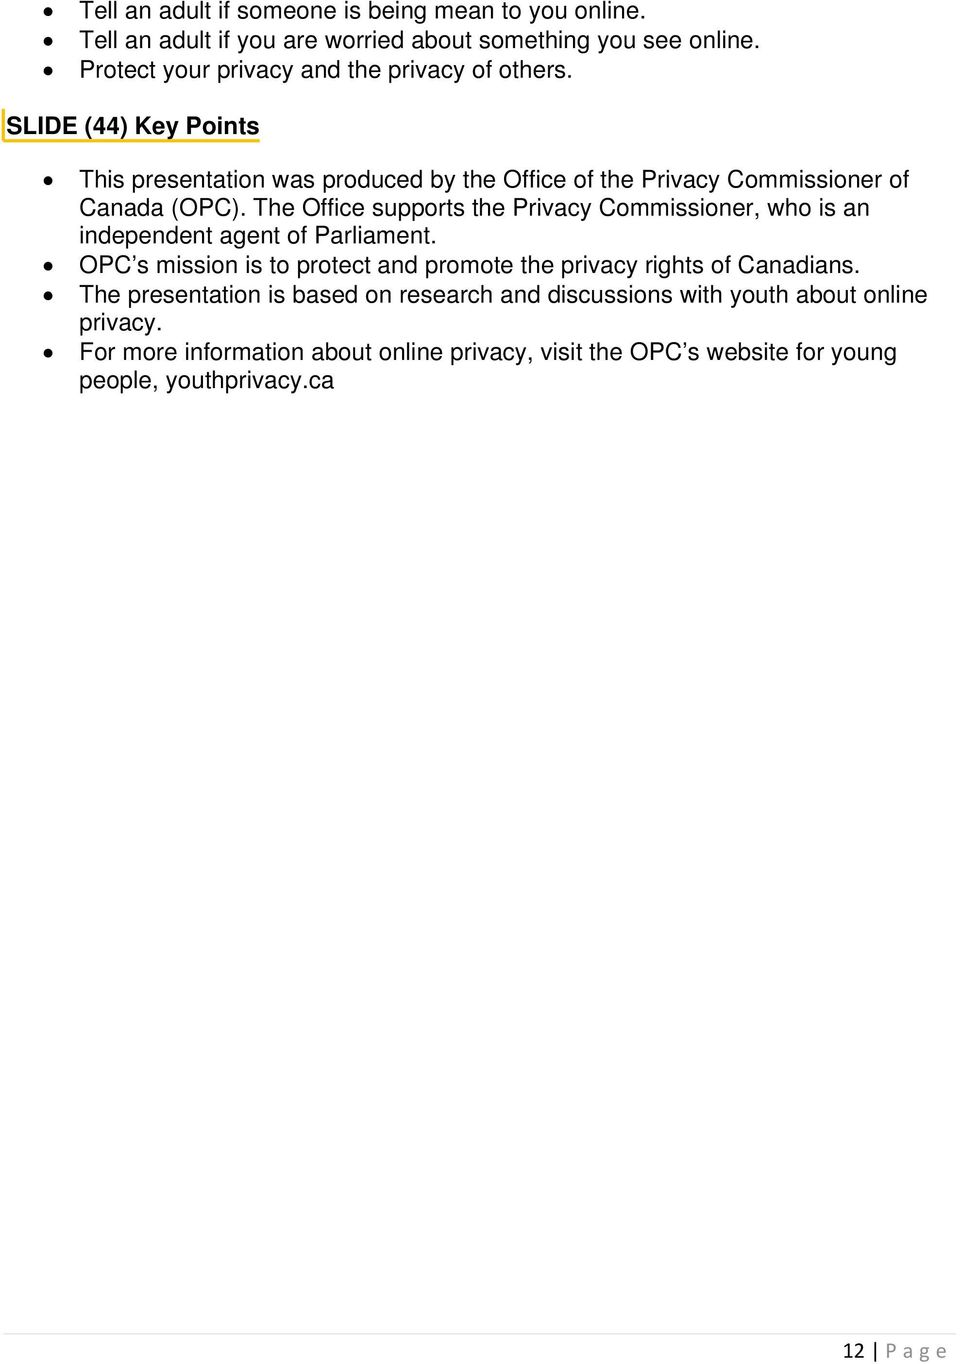 The Office supports the Privacy Commissioner, who is an independent agent of Parliament.